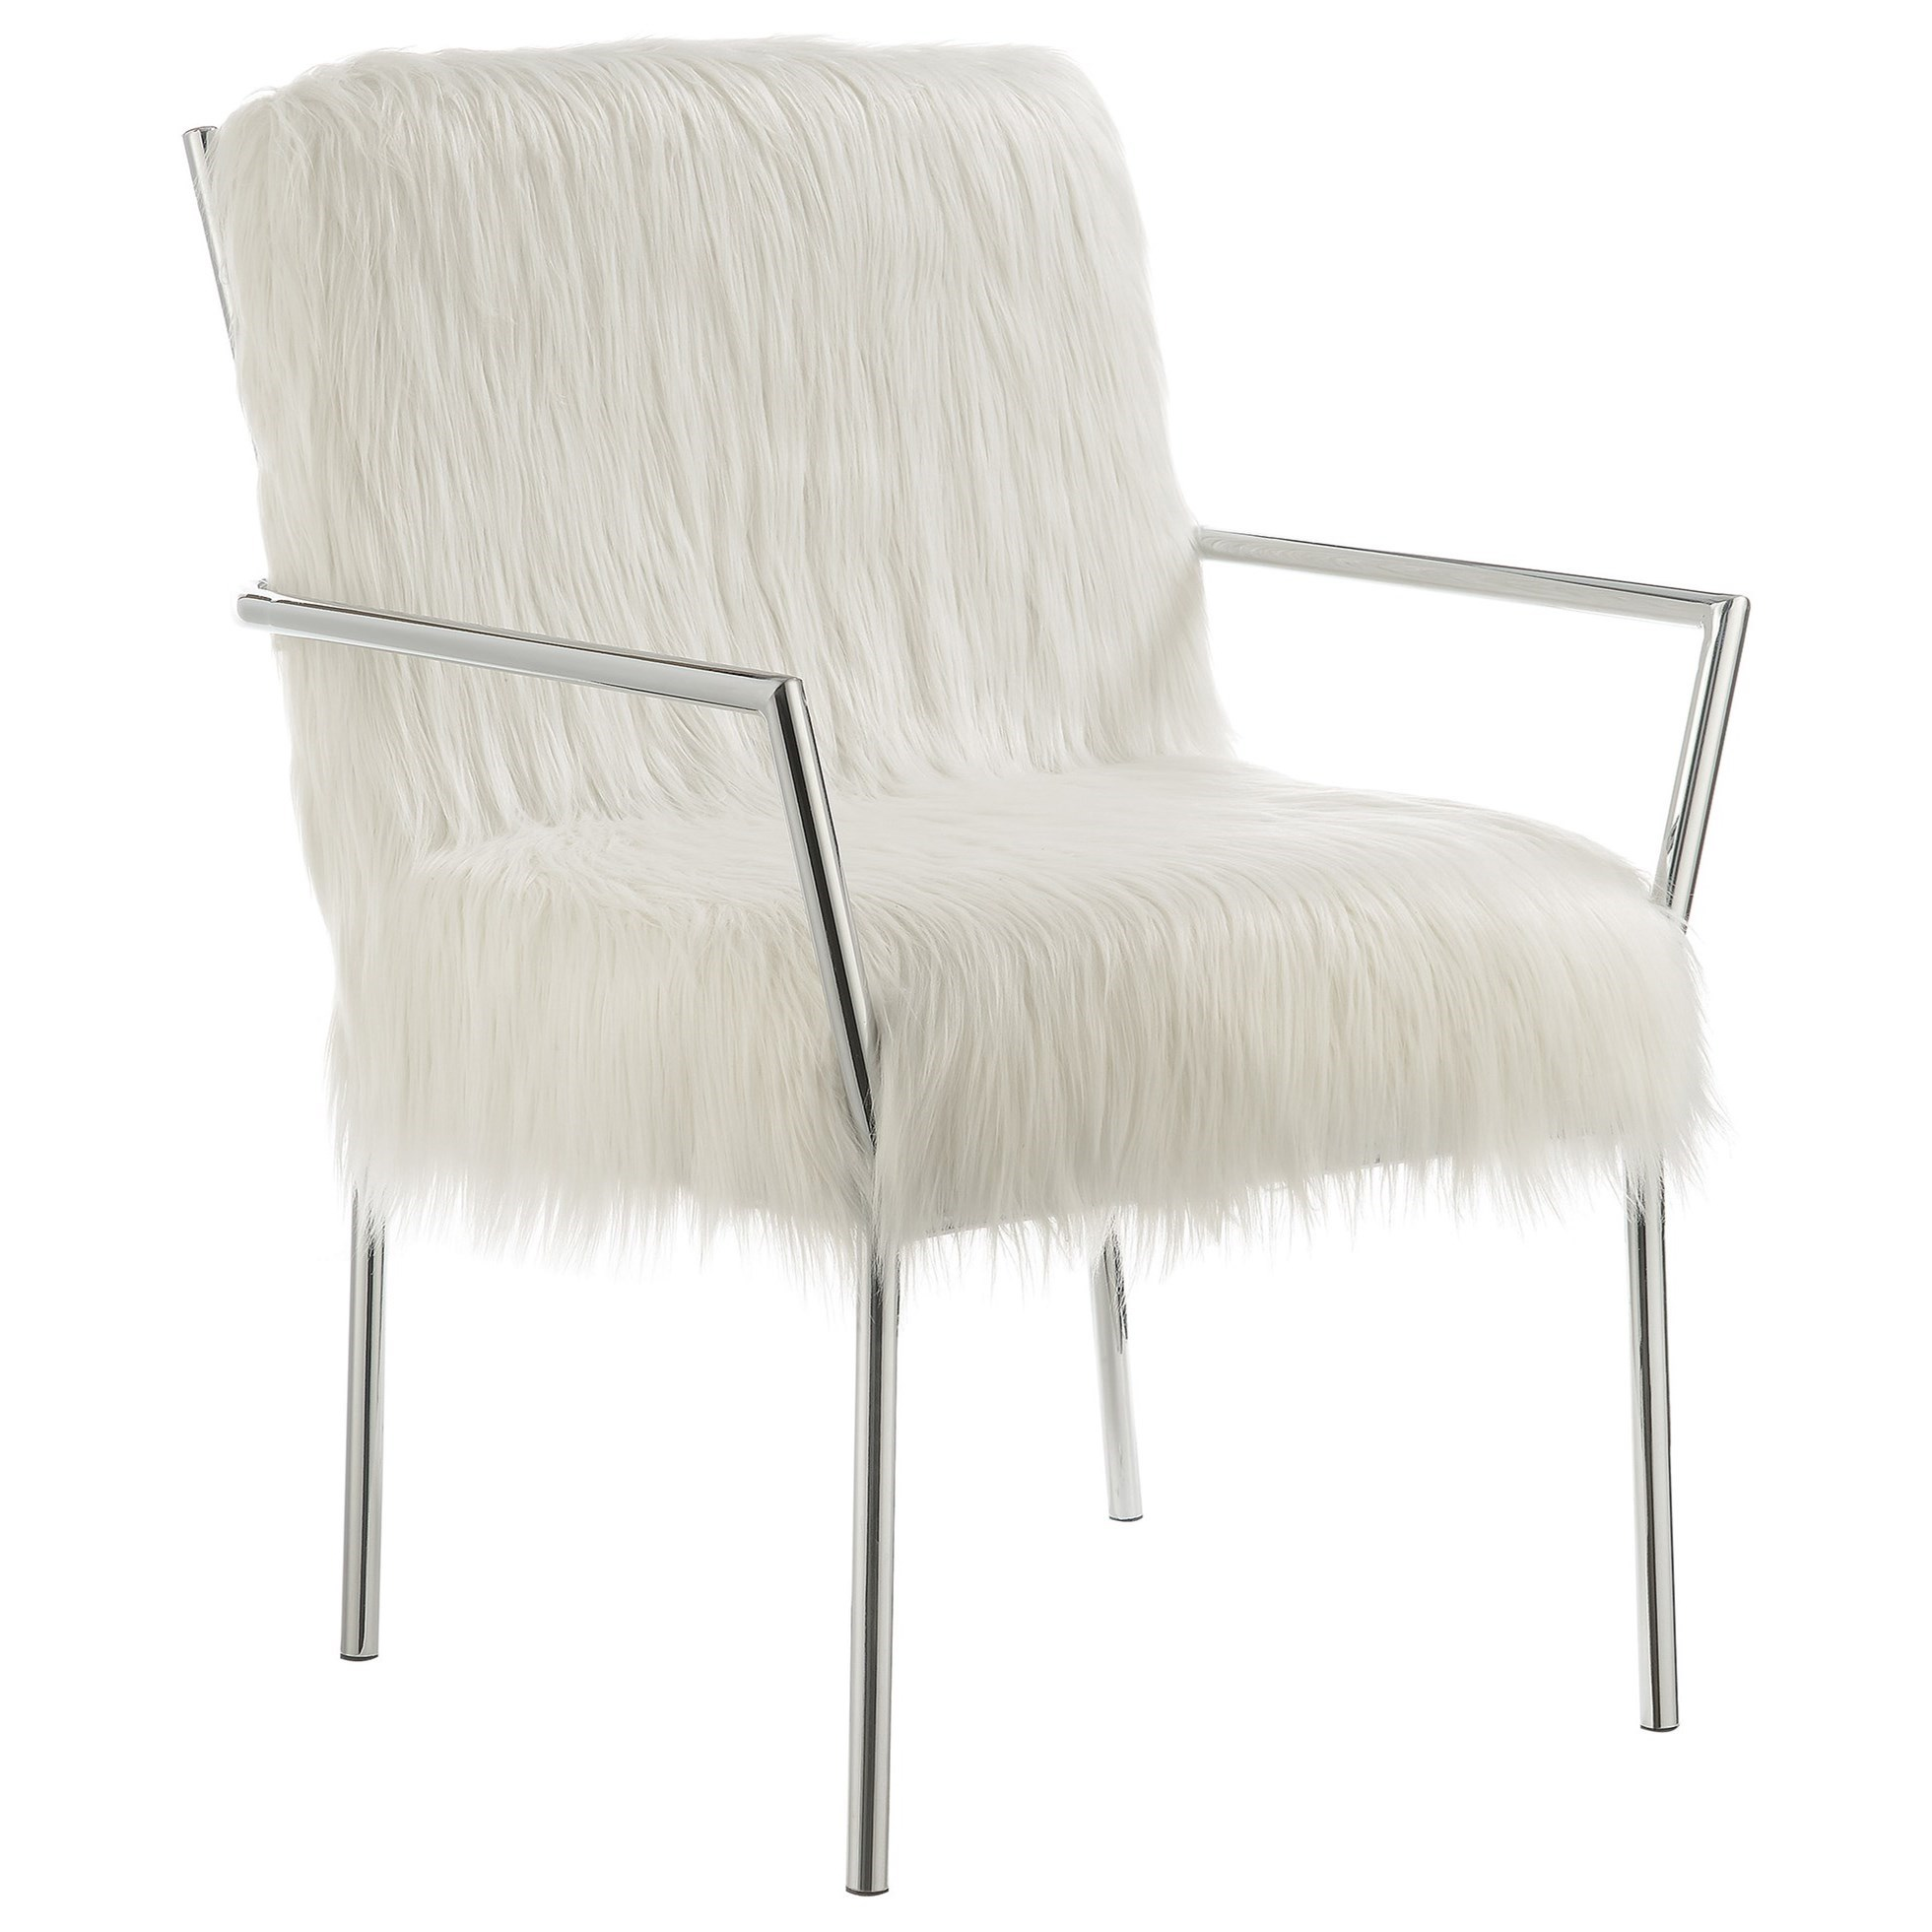 Coaster Accent Chair Accent Seating Contemporary Accent Chair With Faux Sheepskin By Coaster At Sam Levitz Furniture